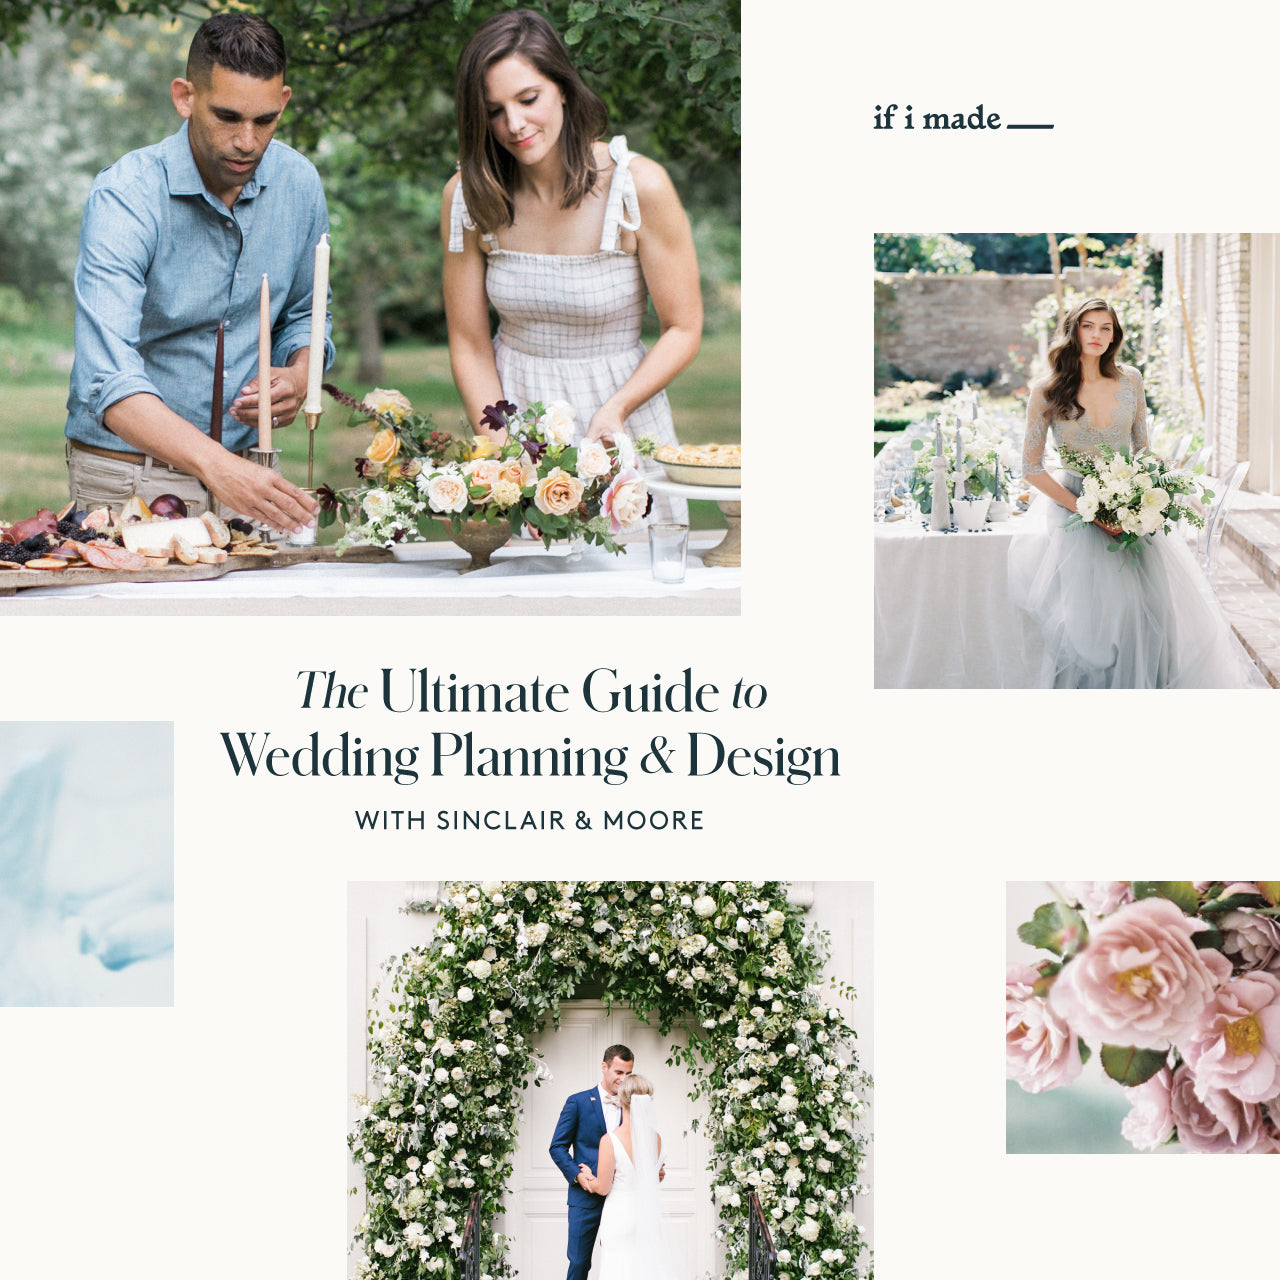 Sale Payment Plan: The Ultimate Guide to Wedding Planning & Design with Sinclair & Moore - 13 payments of $149